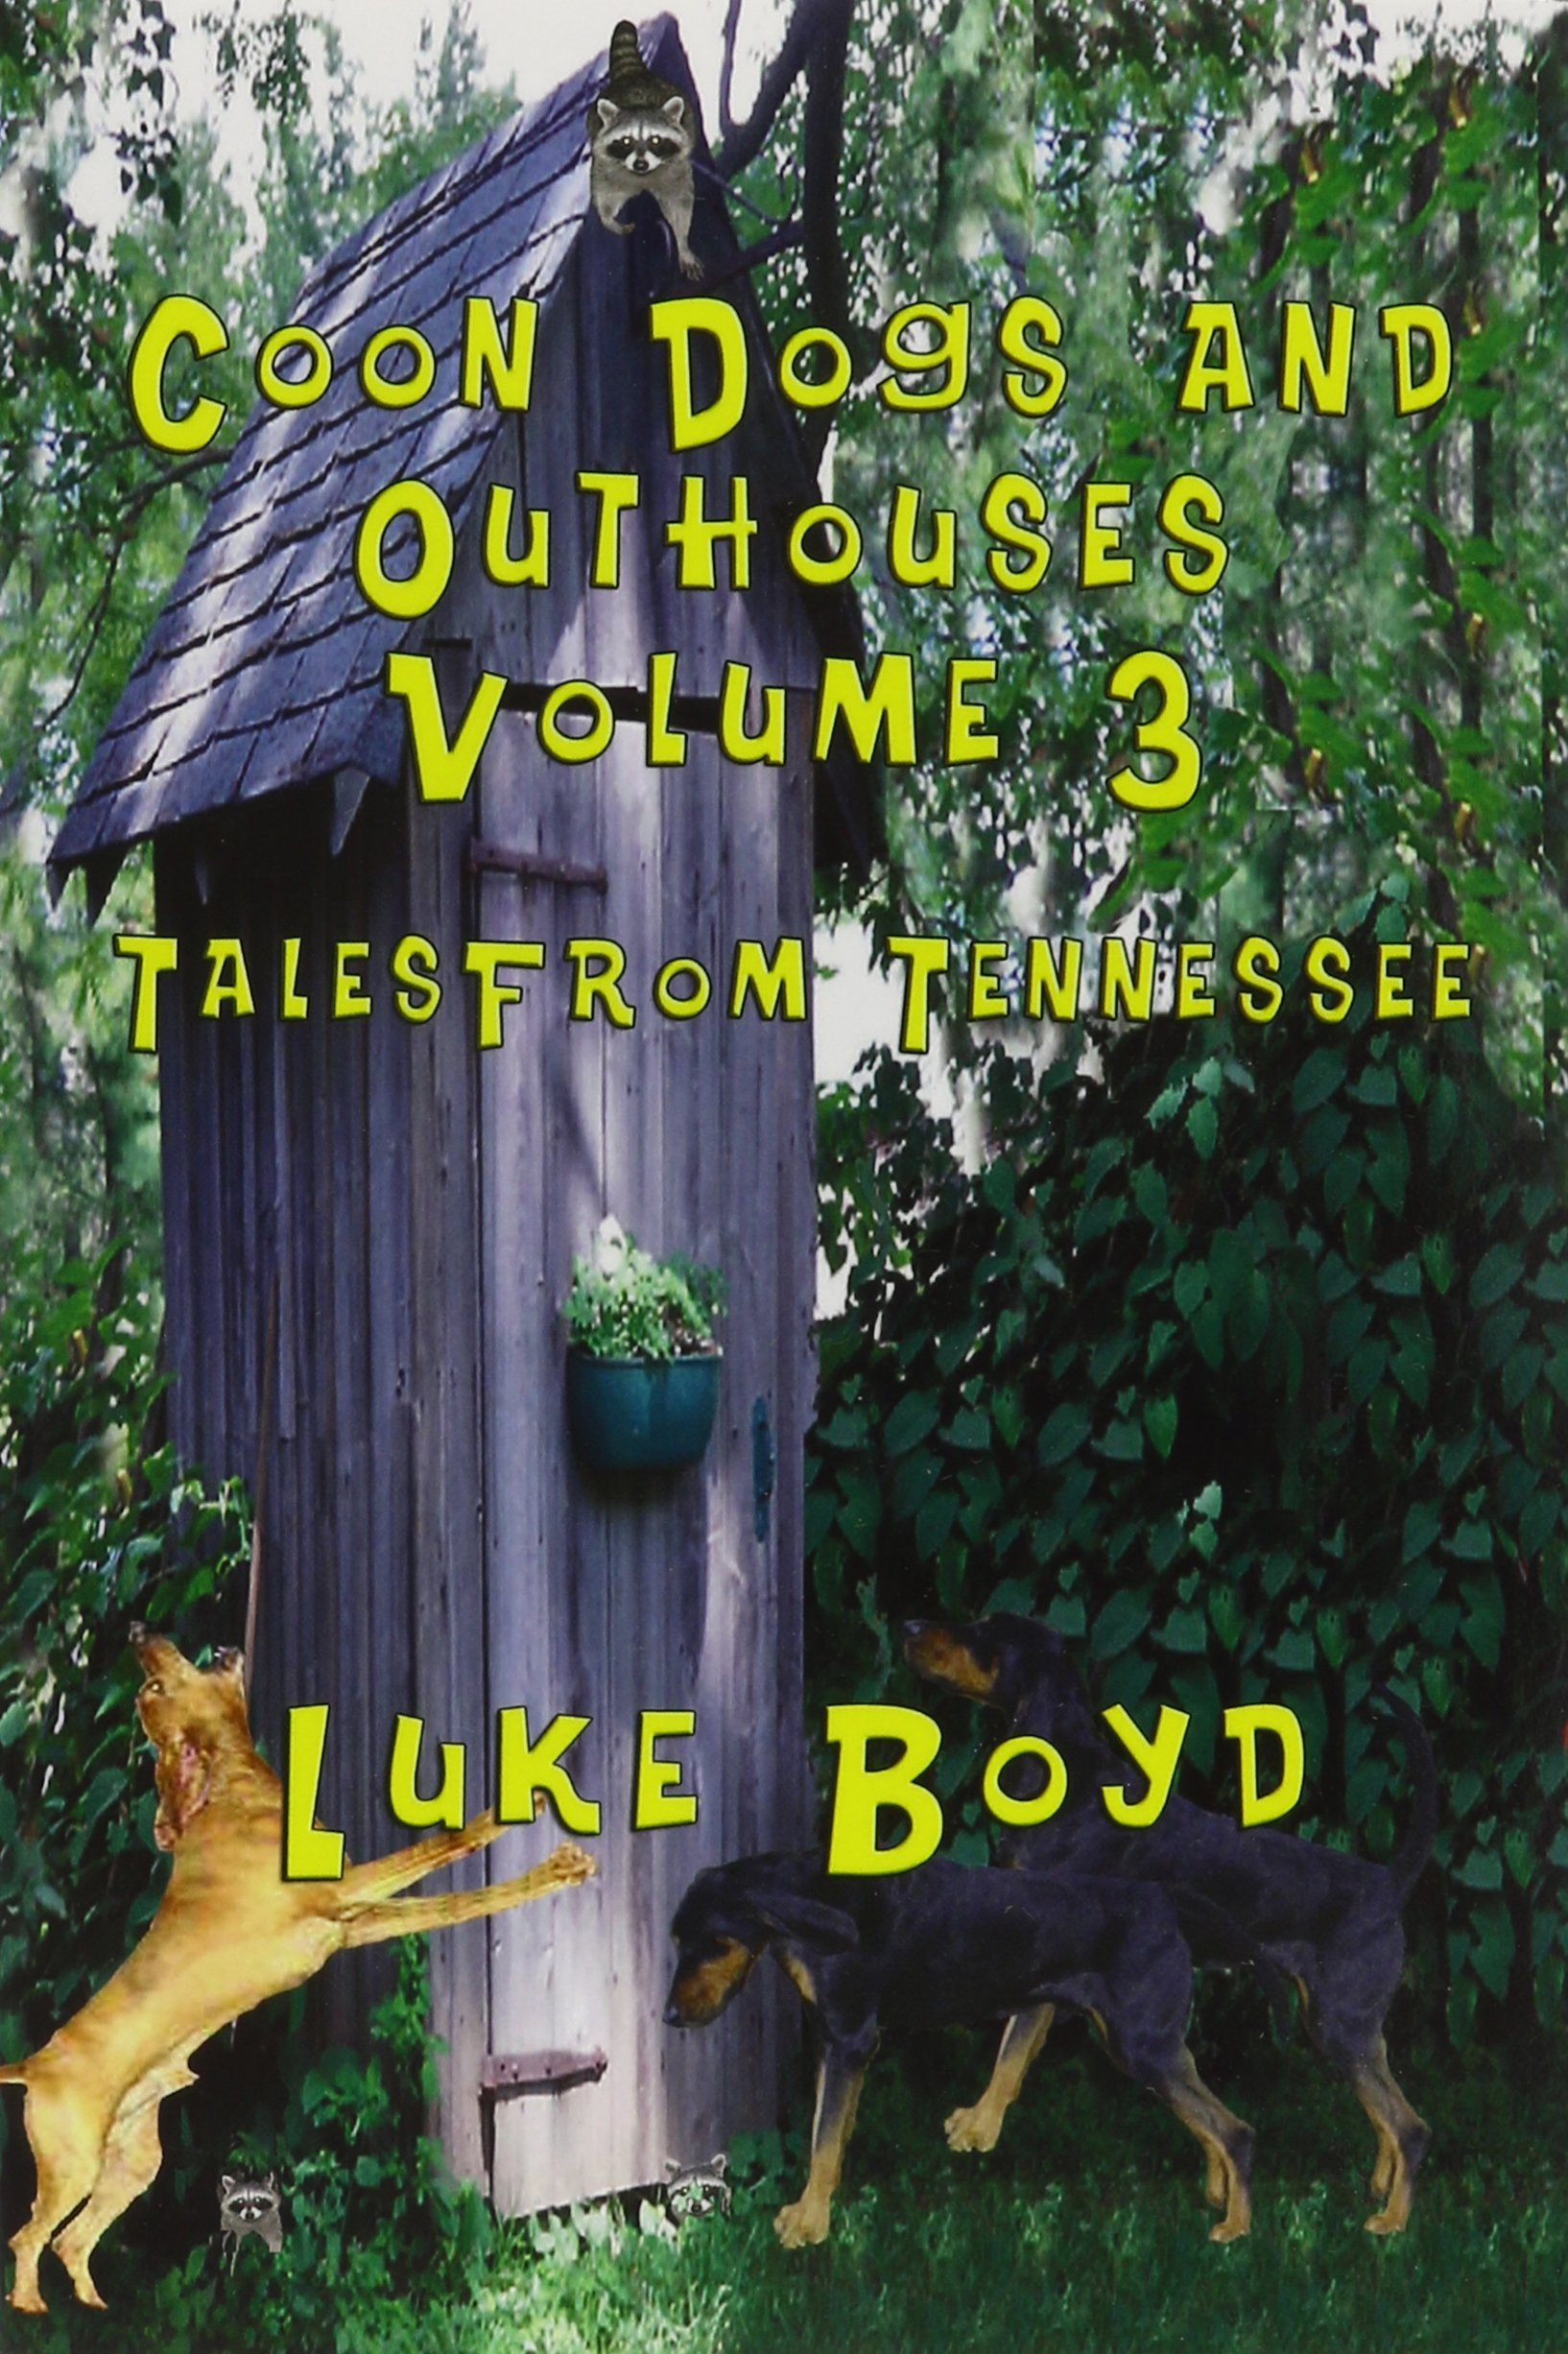 Download Coon Dogs and Outhouses Volume 3 Tales from Tennessee ebook